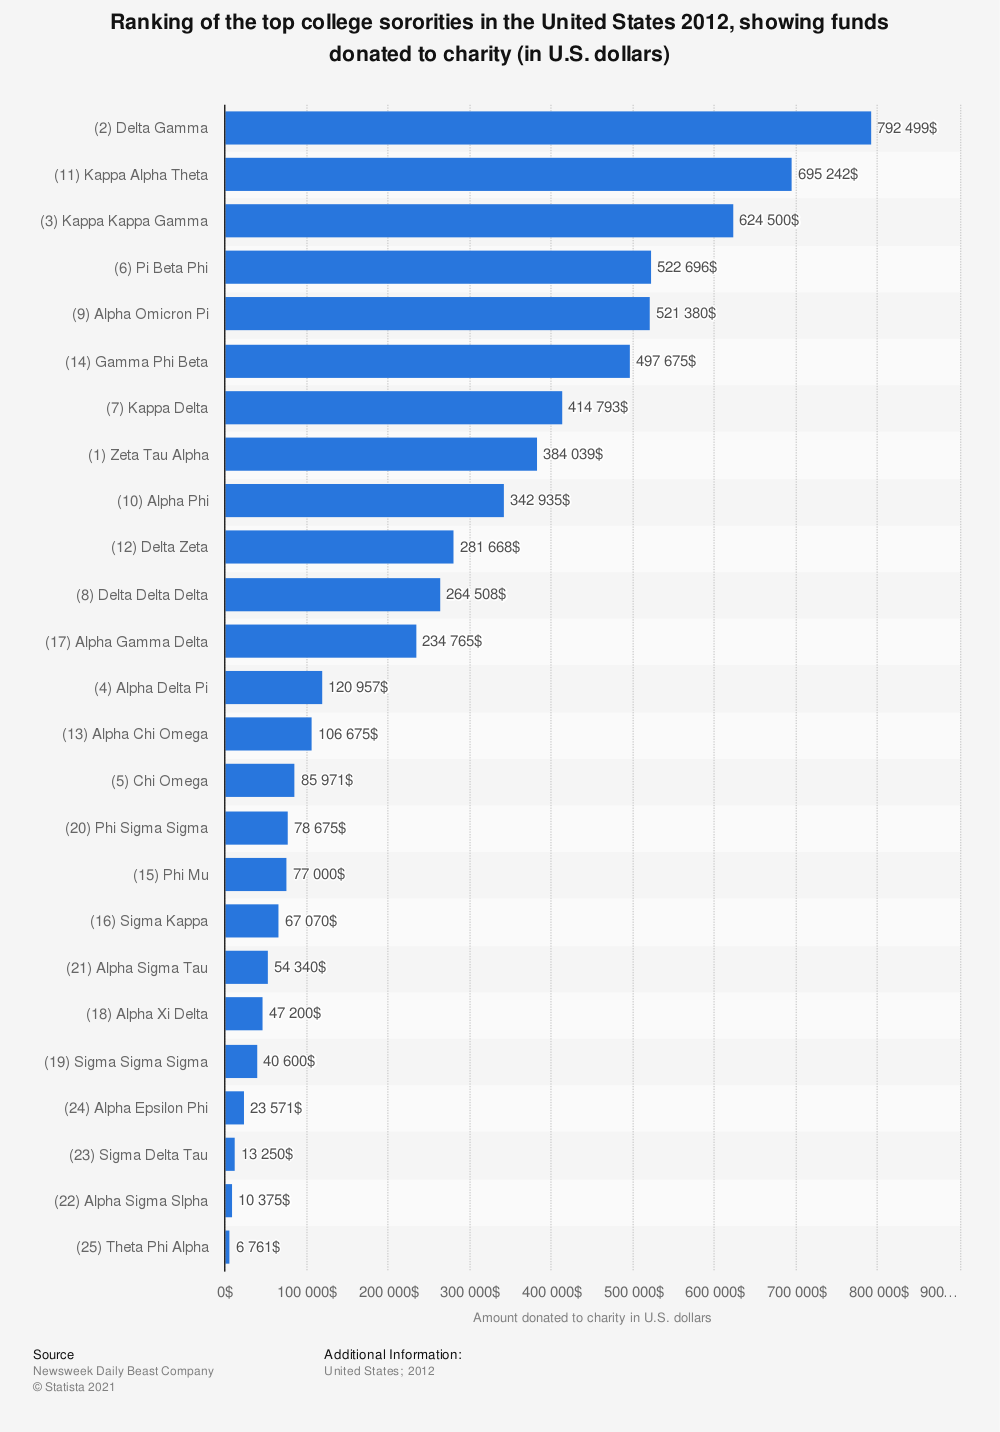 Statistic: Ranking of the top college sororities in the United States 2012, showing funds donated to charity (in U.S. dollars) | Statista